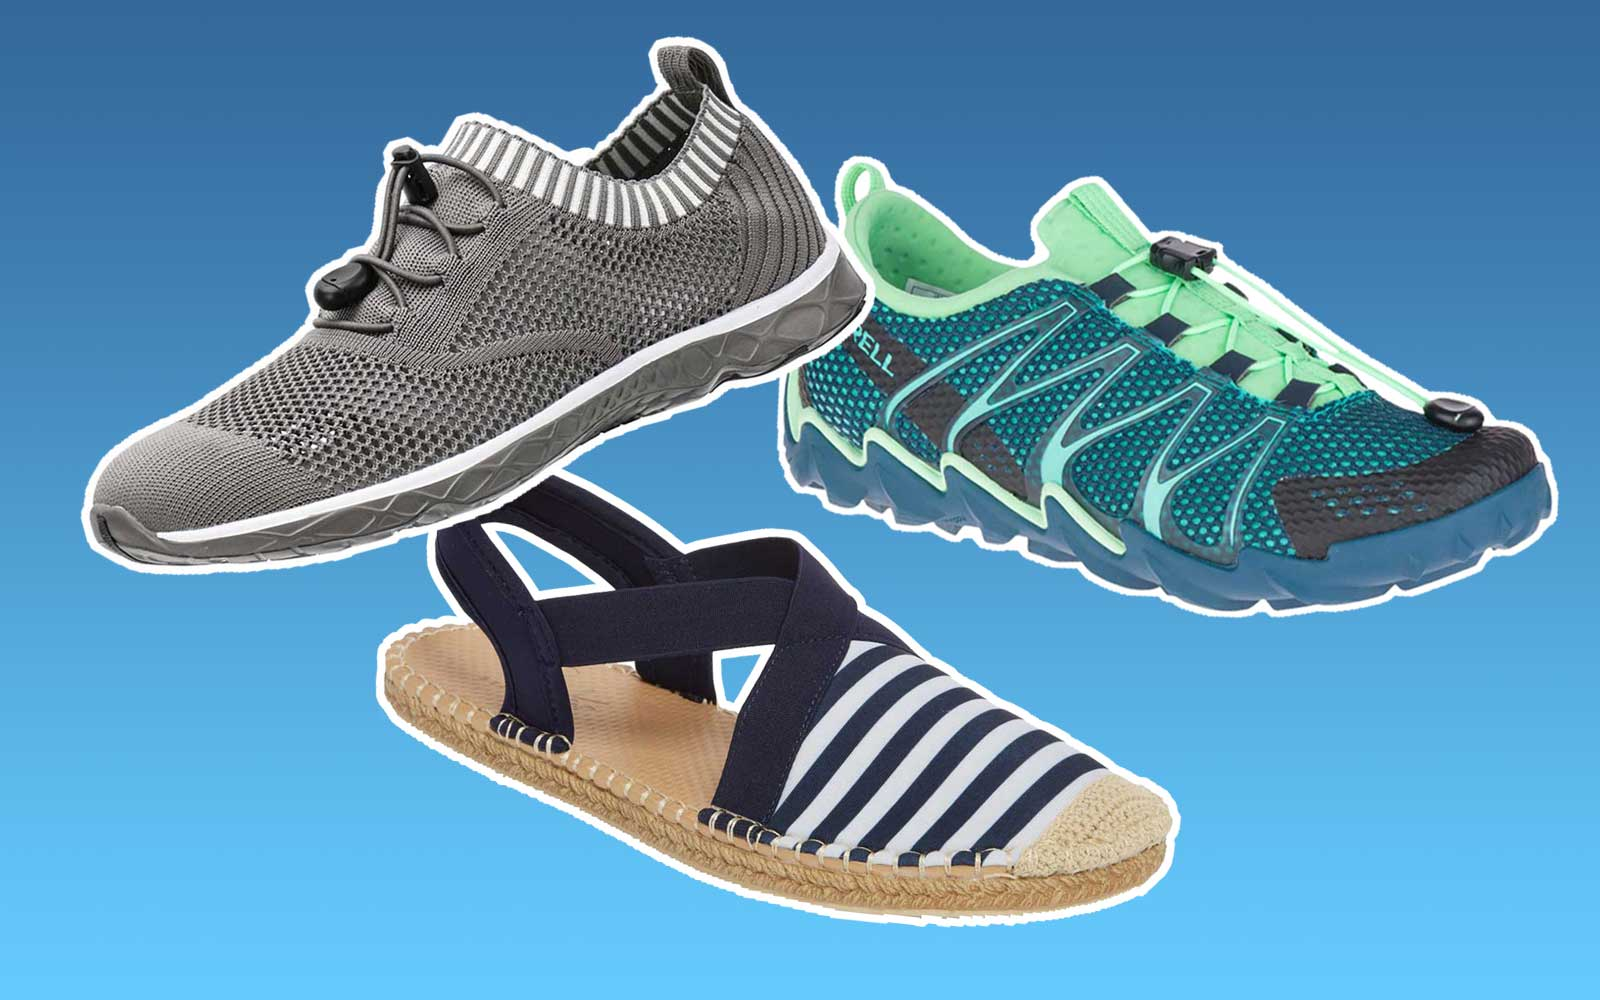 55ca82538b03 The Best Water Shoes for Women in 2019